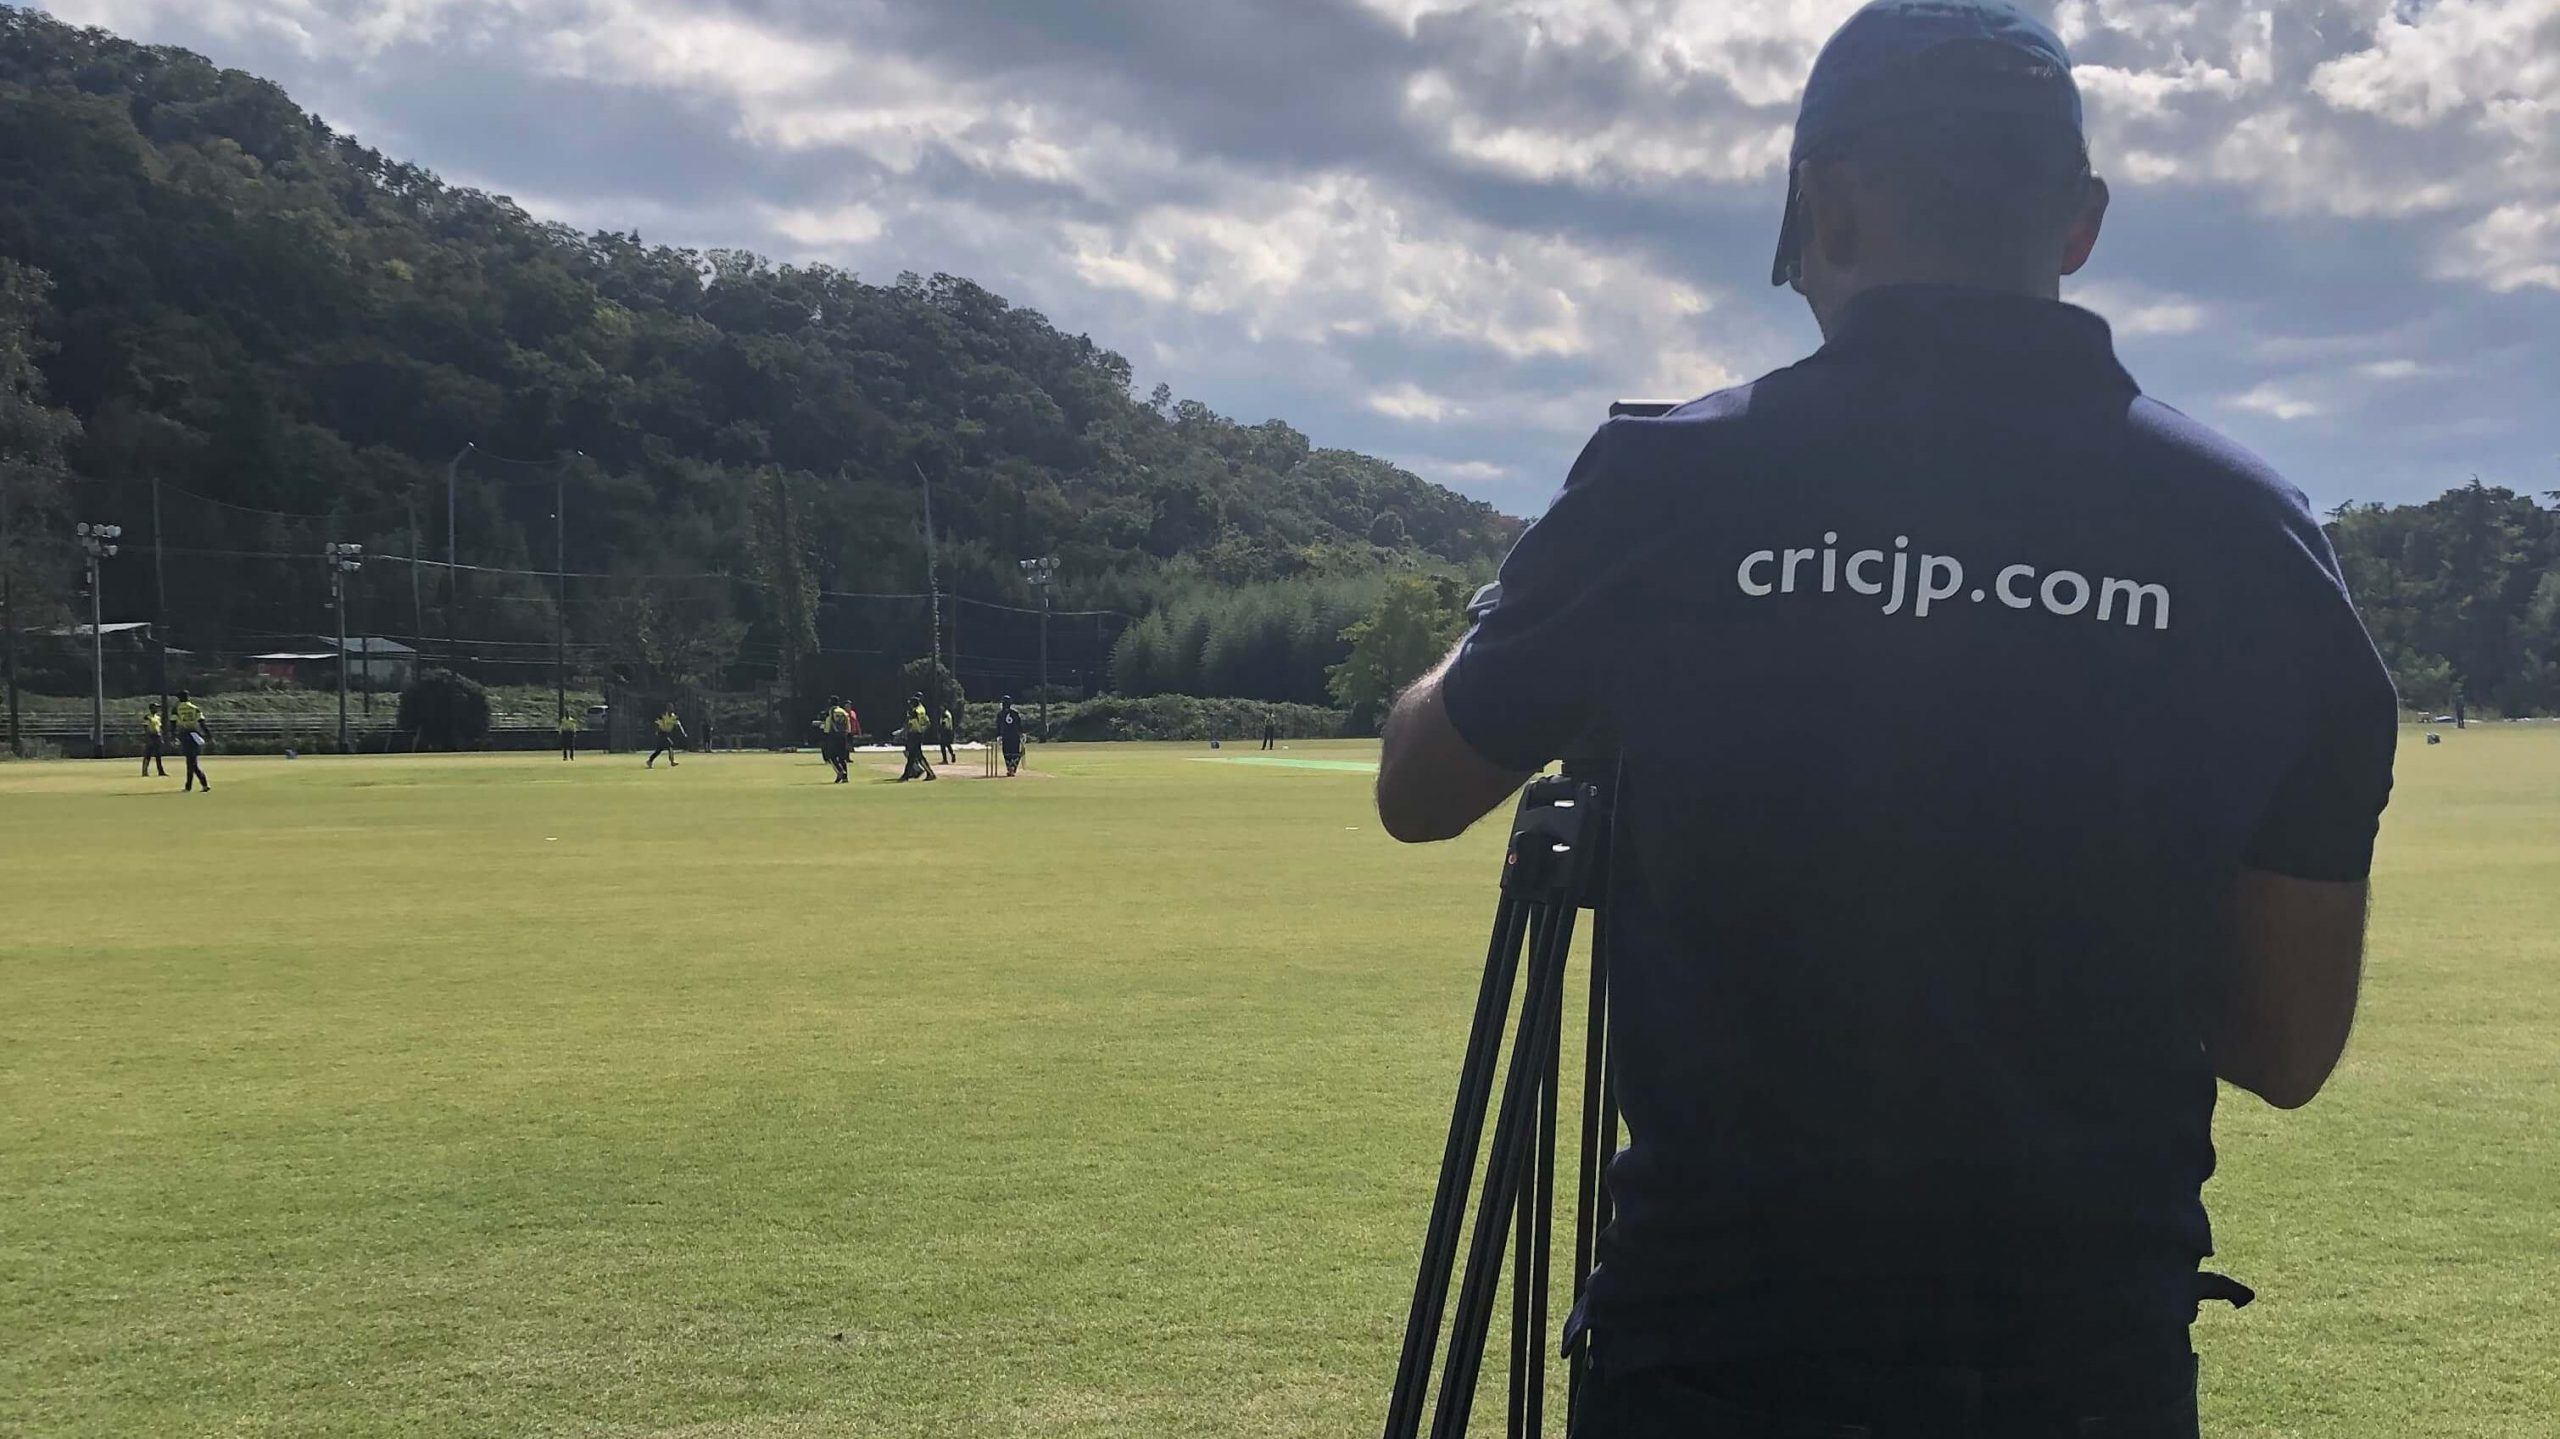 CRICJP Live streaming in action